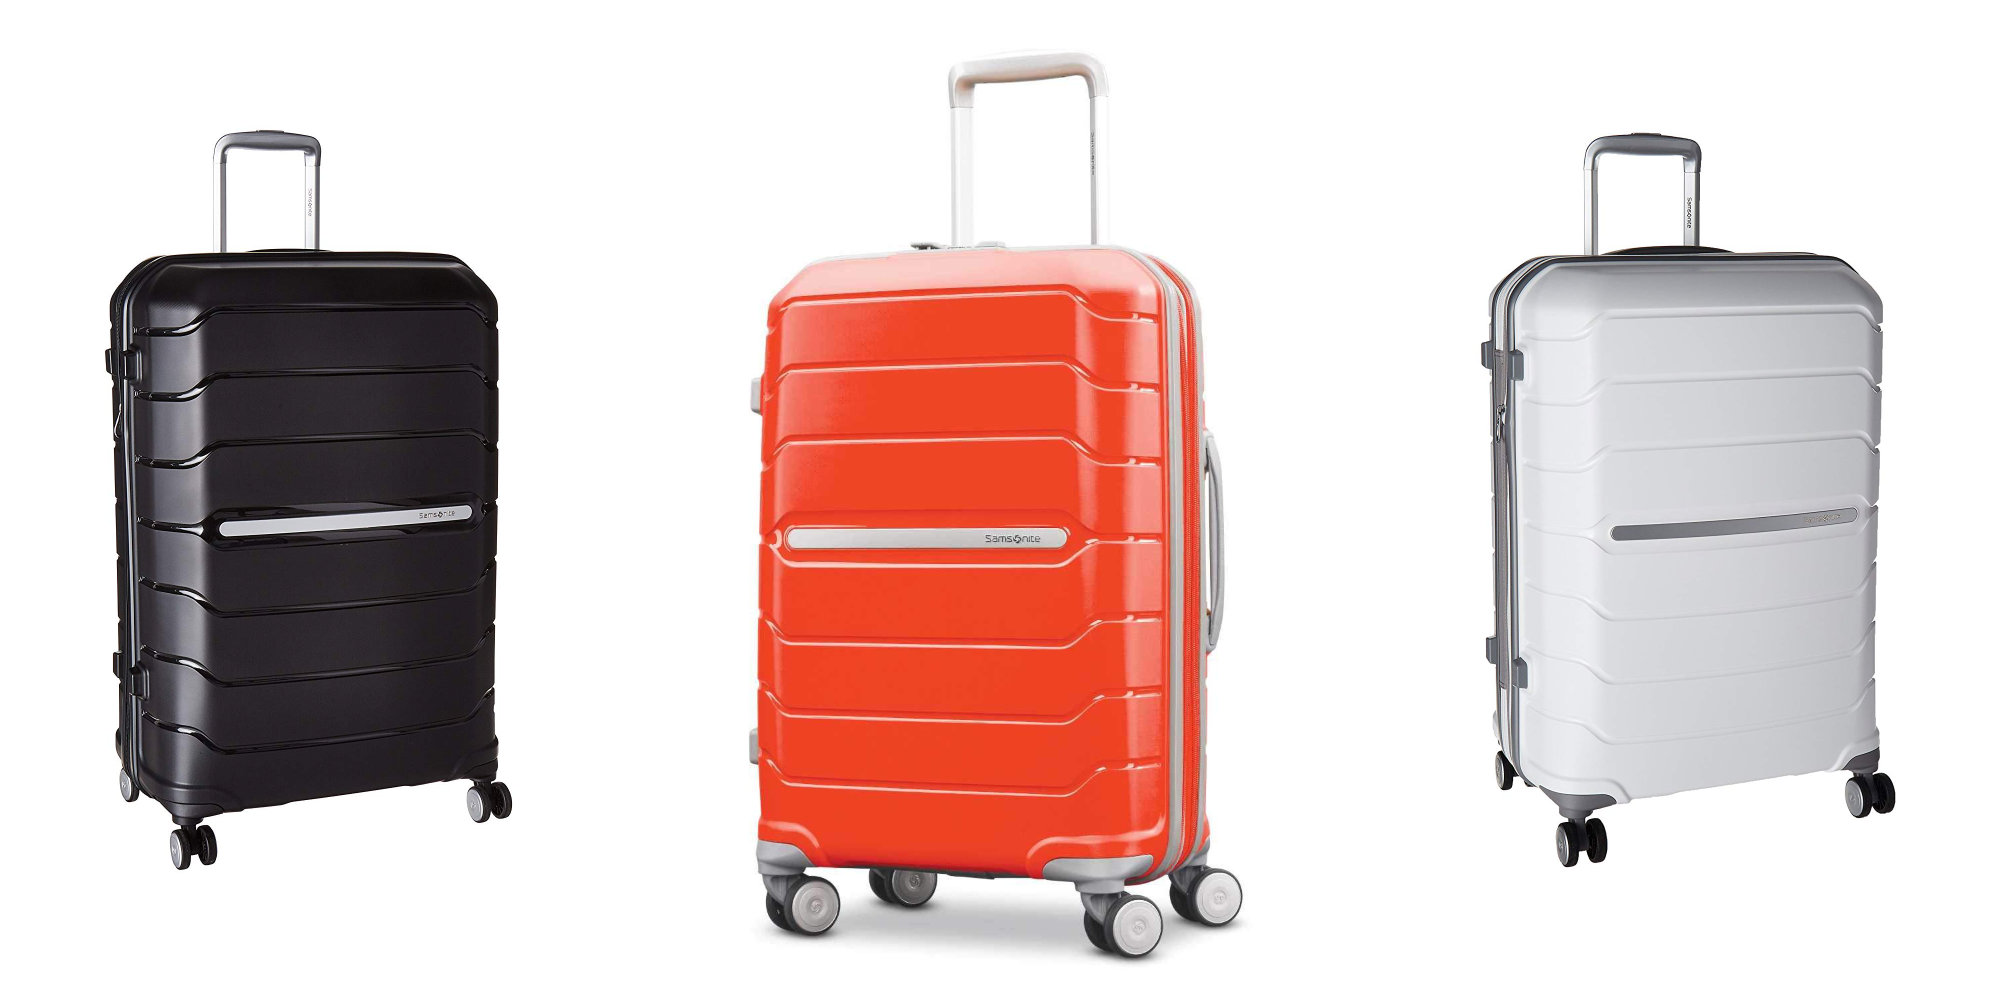 Samsonite's Freeform Hardside Spinner Luggage sees new lows w/ prices starting at $69 (40% off)